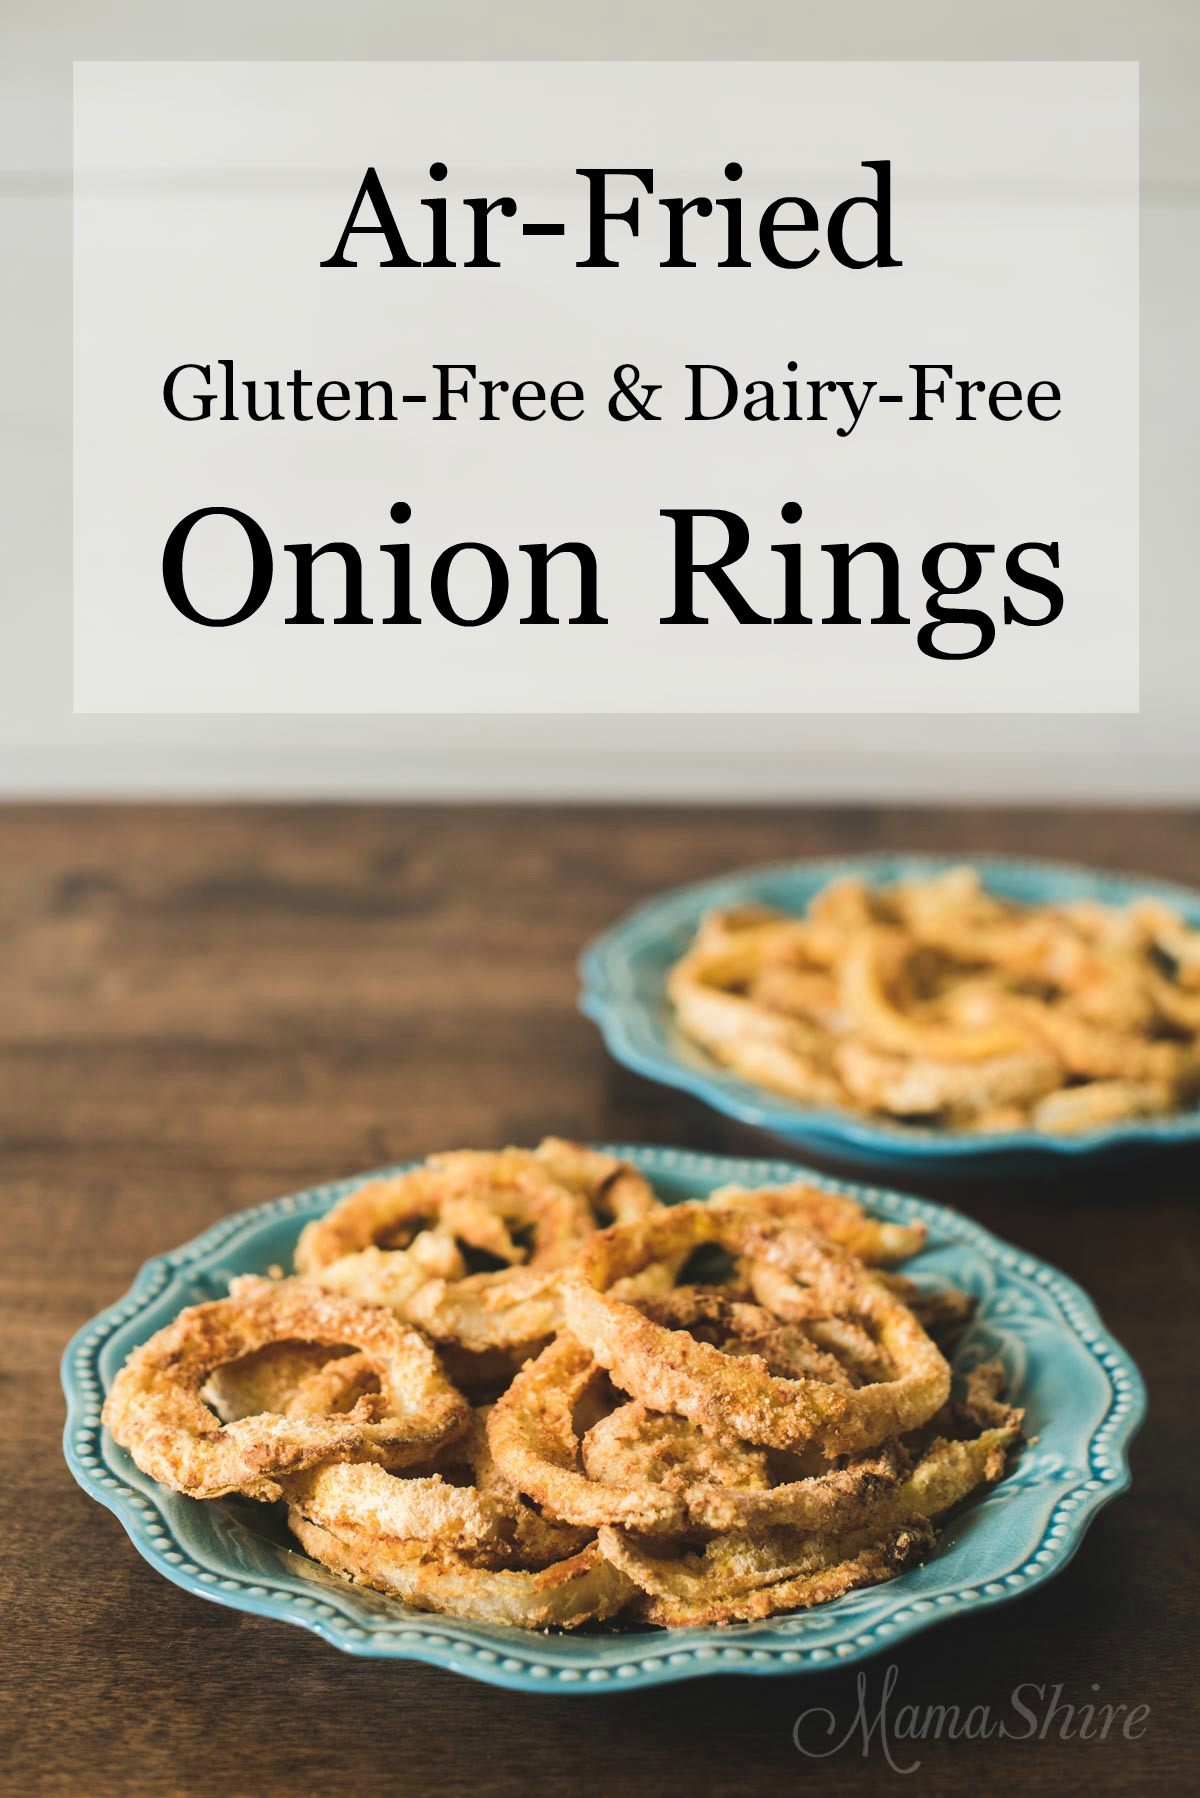 Air Fried Gluten Free Onion Rings Mamashire